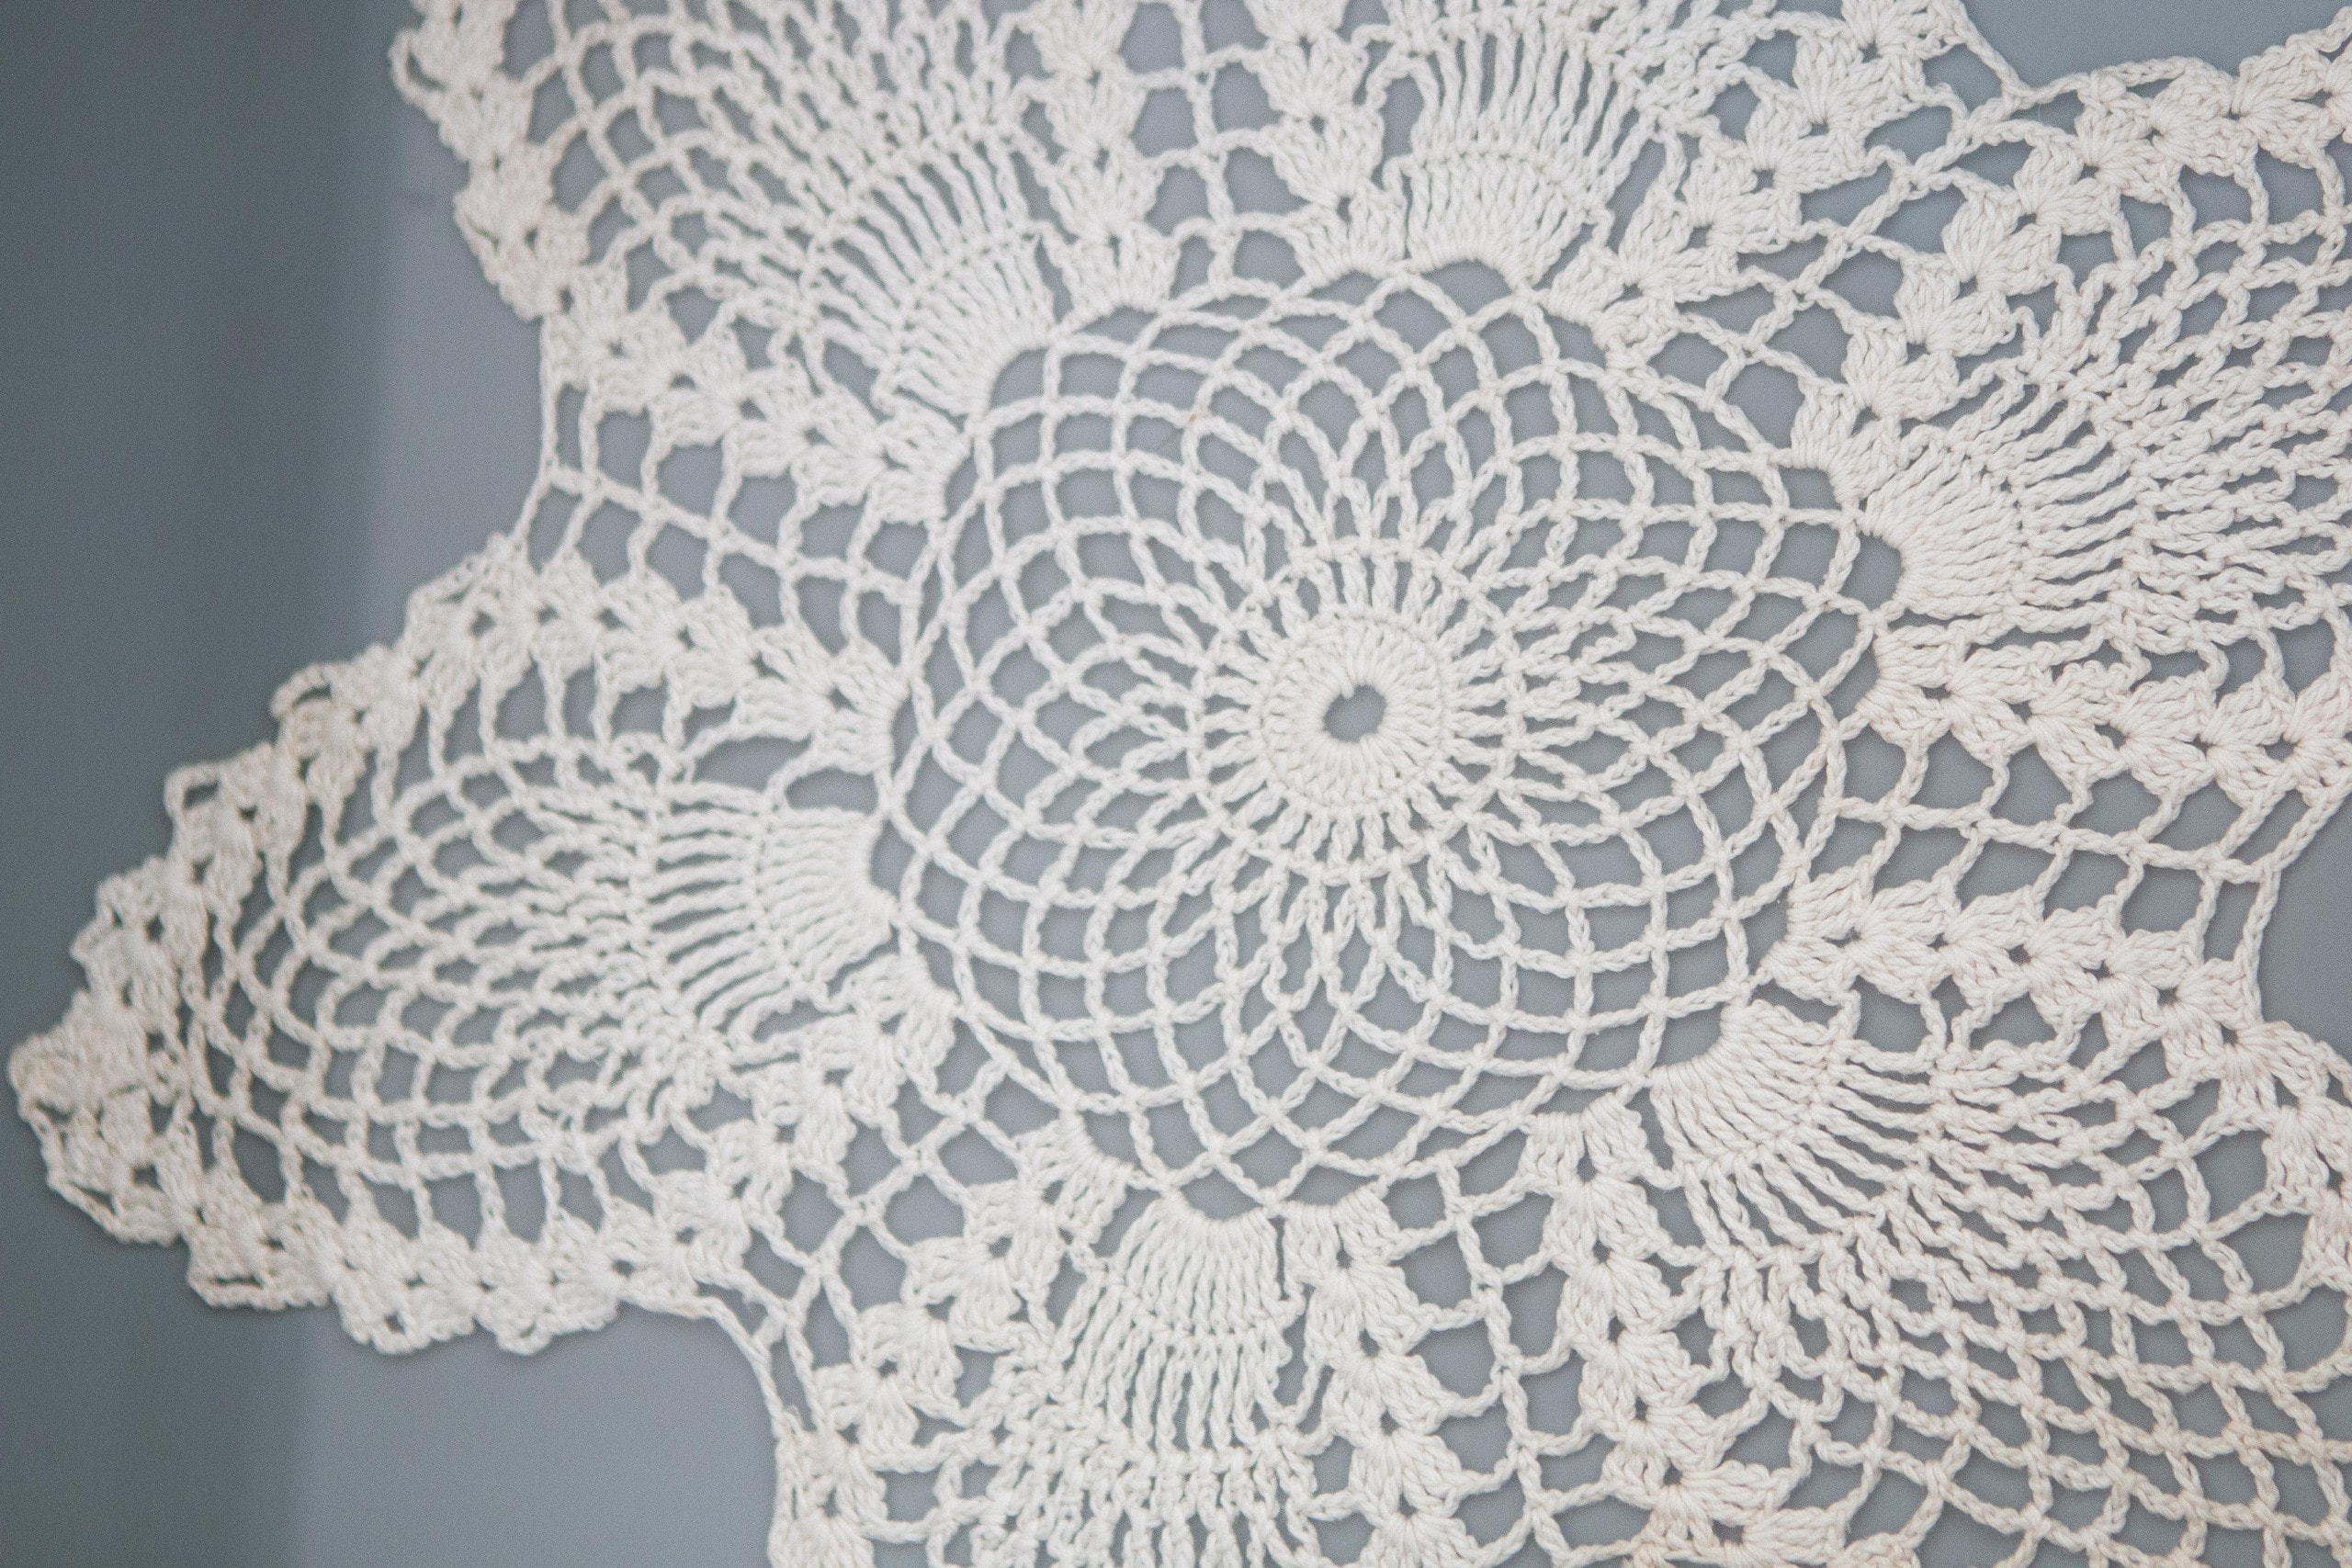 The details of a crocheted doily